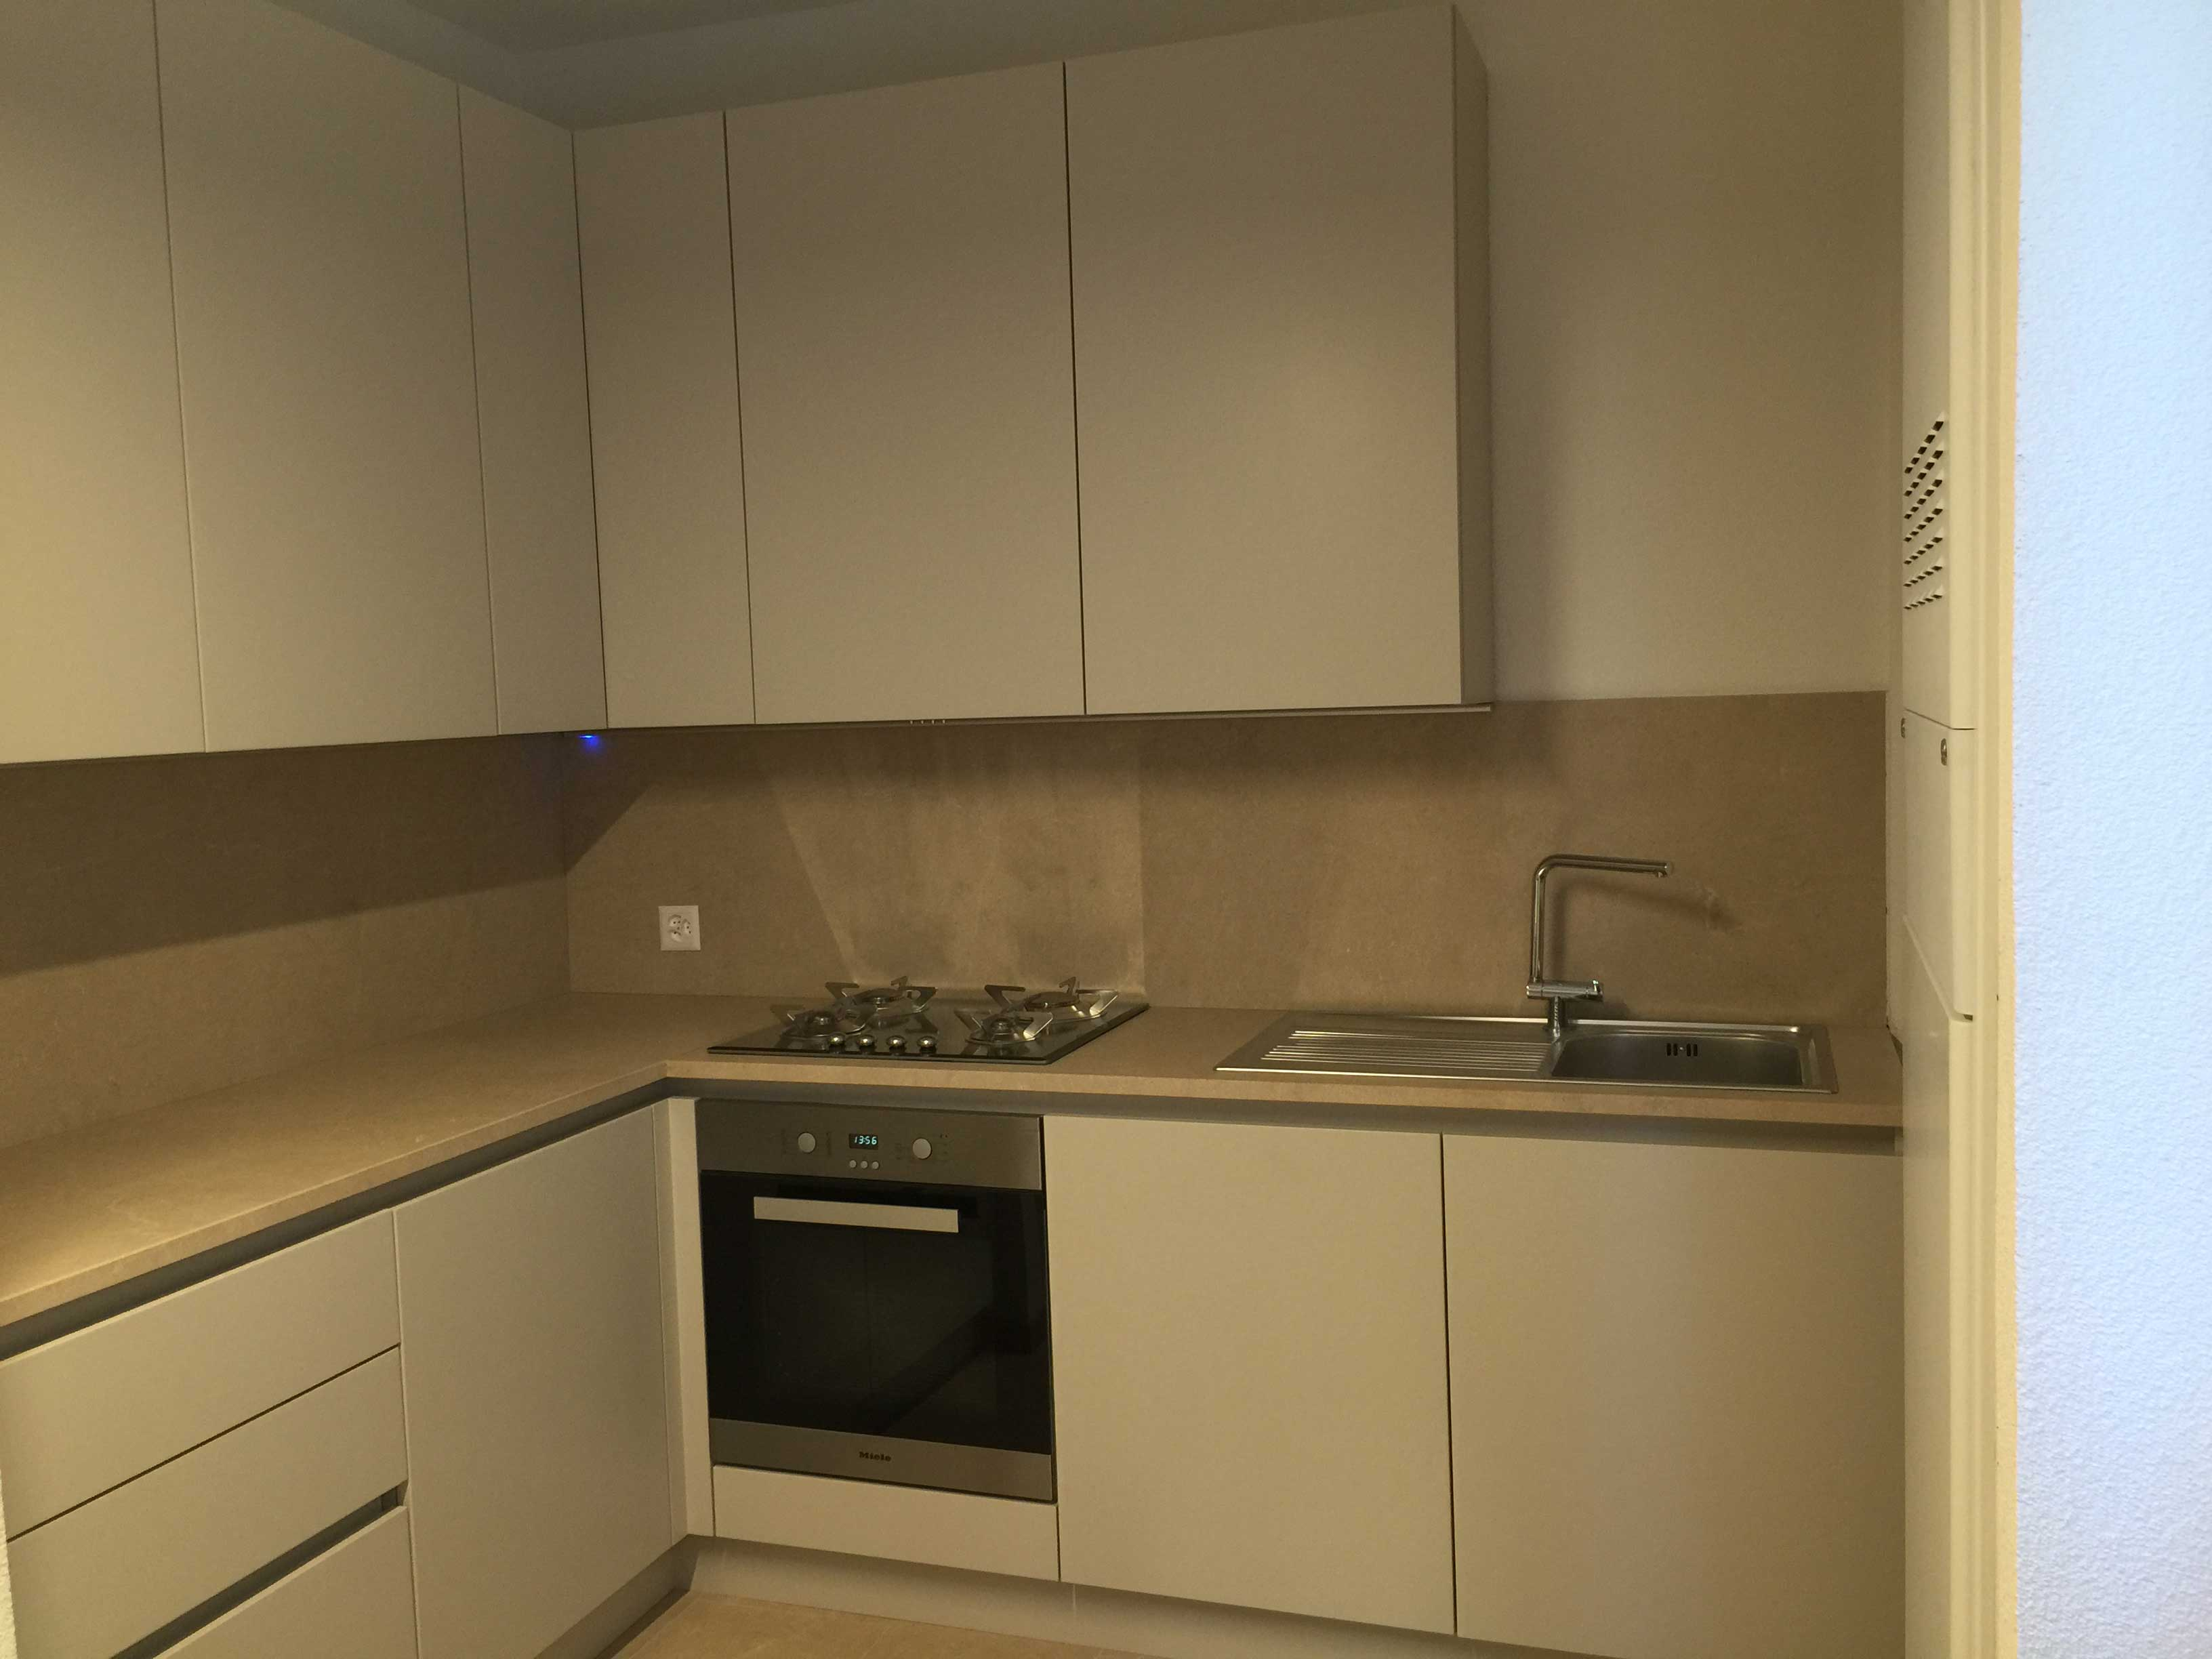 LUGANO - Wide 3.5 apartment close to the USI University - Living ...